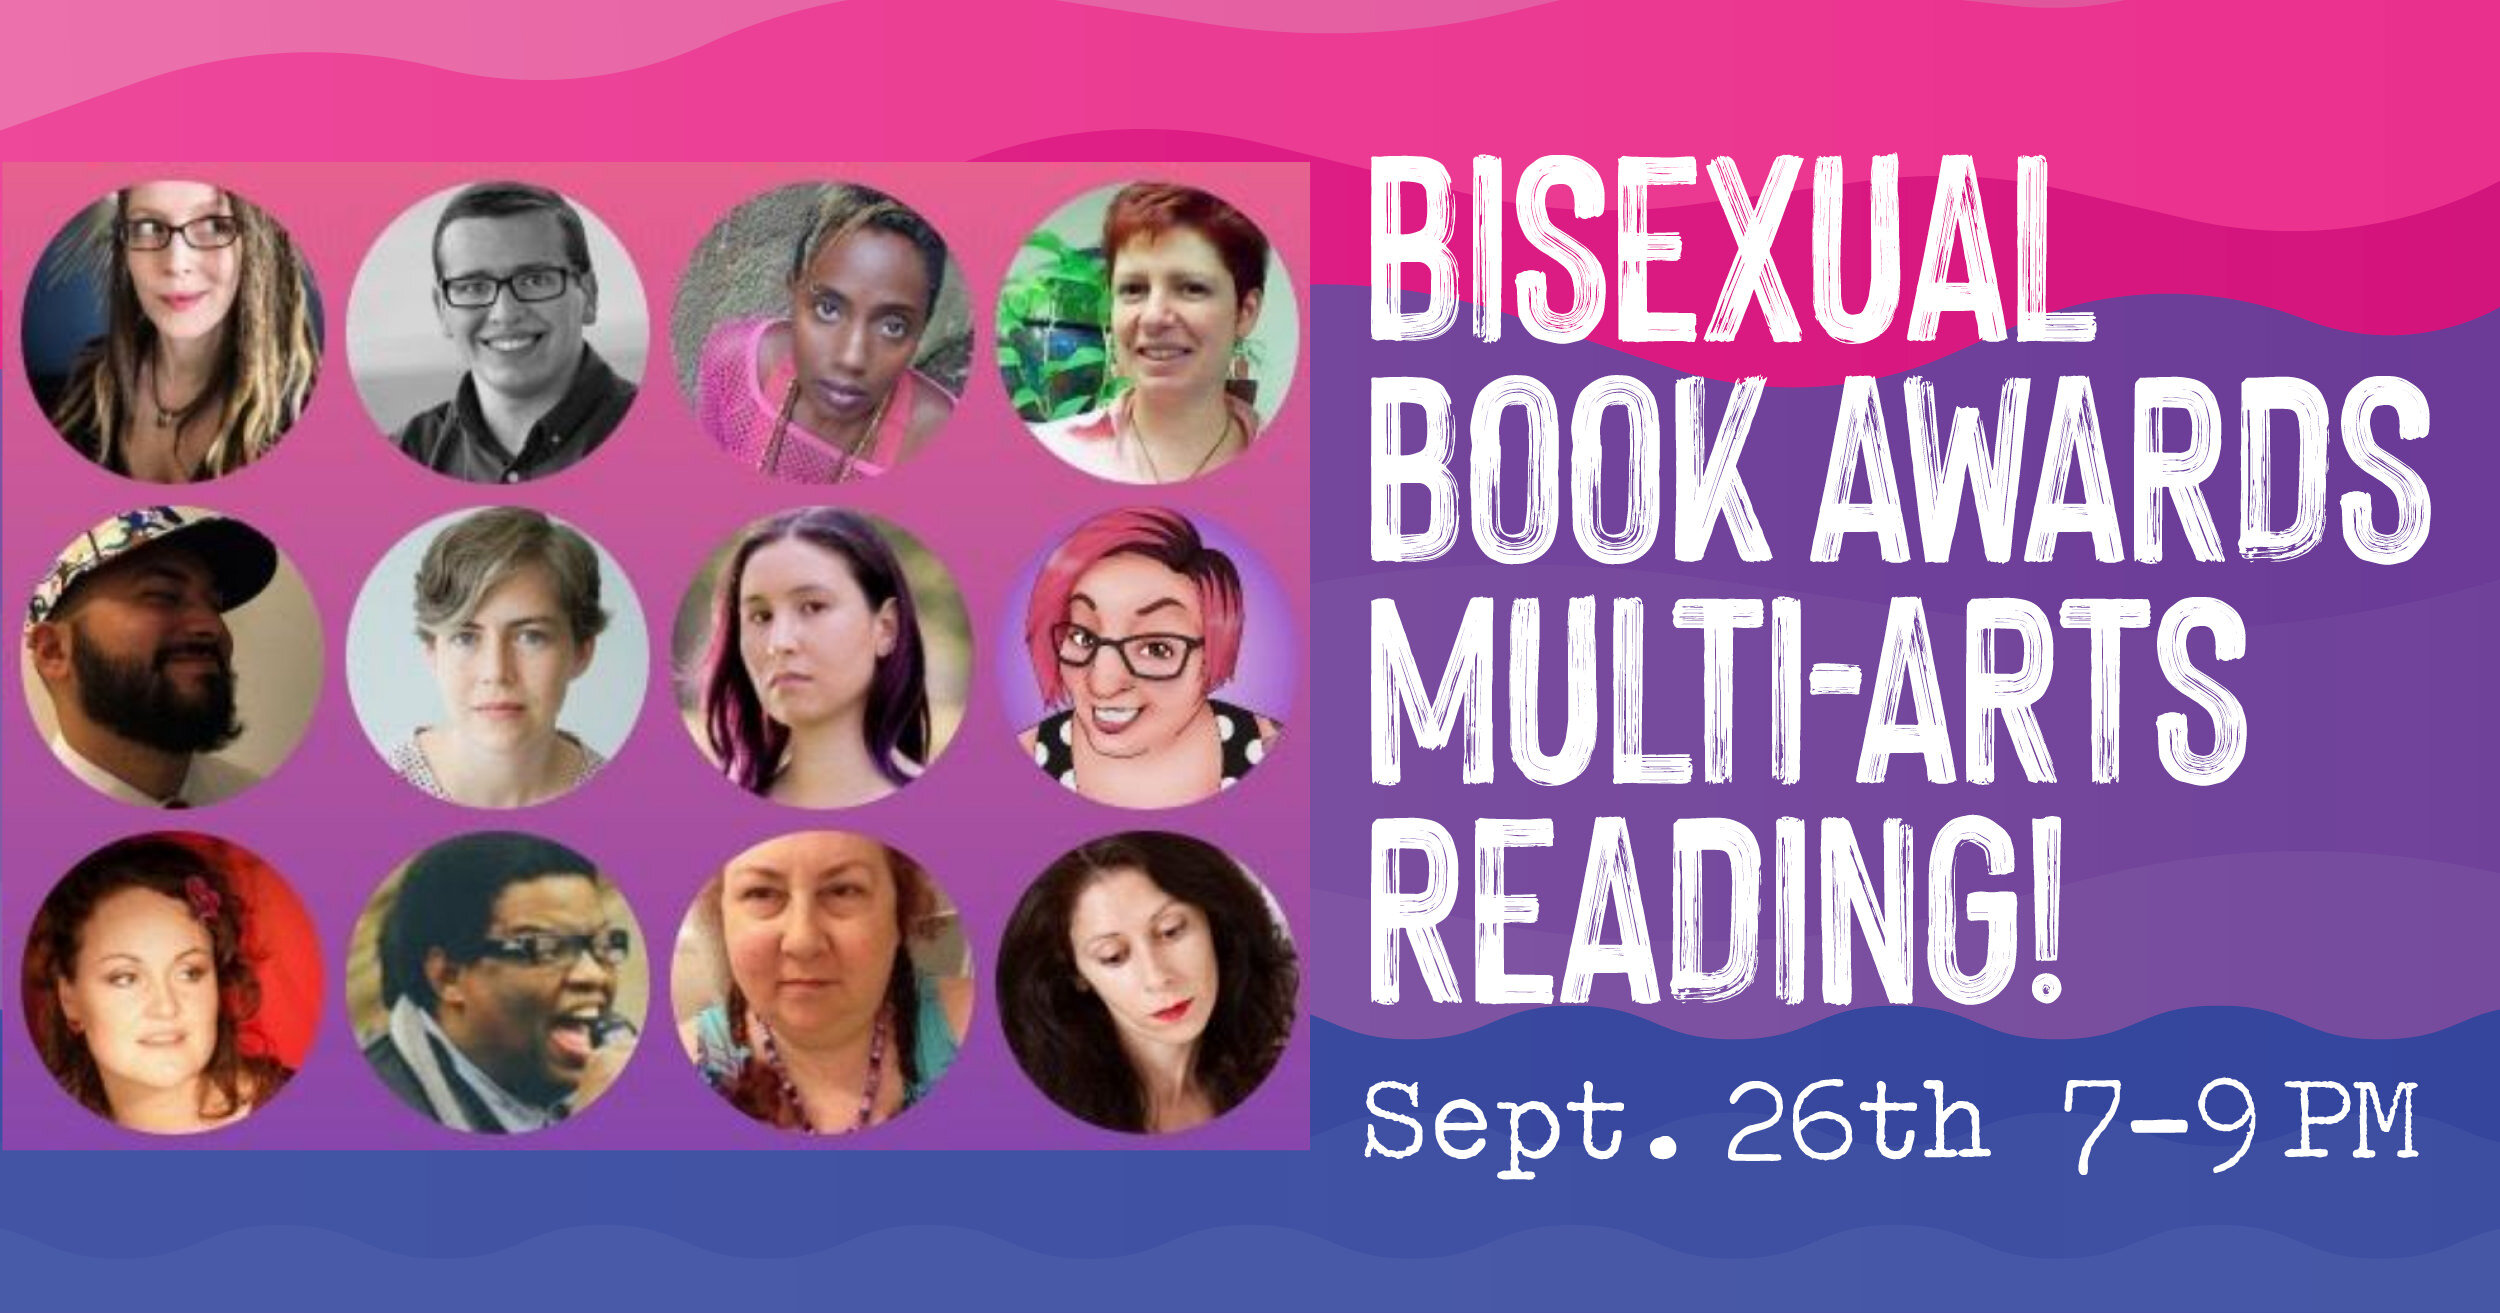 Bisexual Book Awards MULTI-ARTS READING! at Brooklyn Community Pride Center